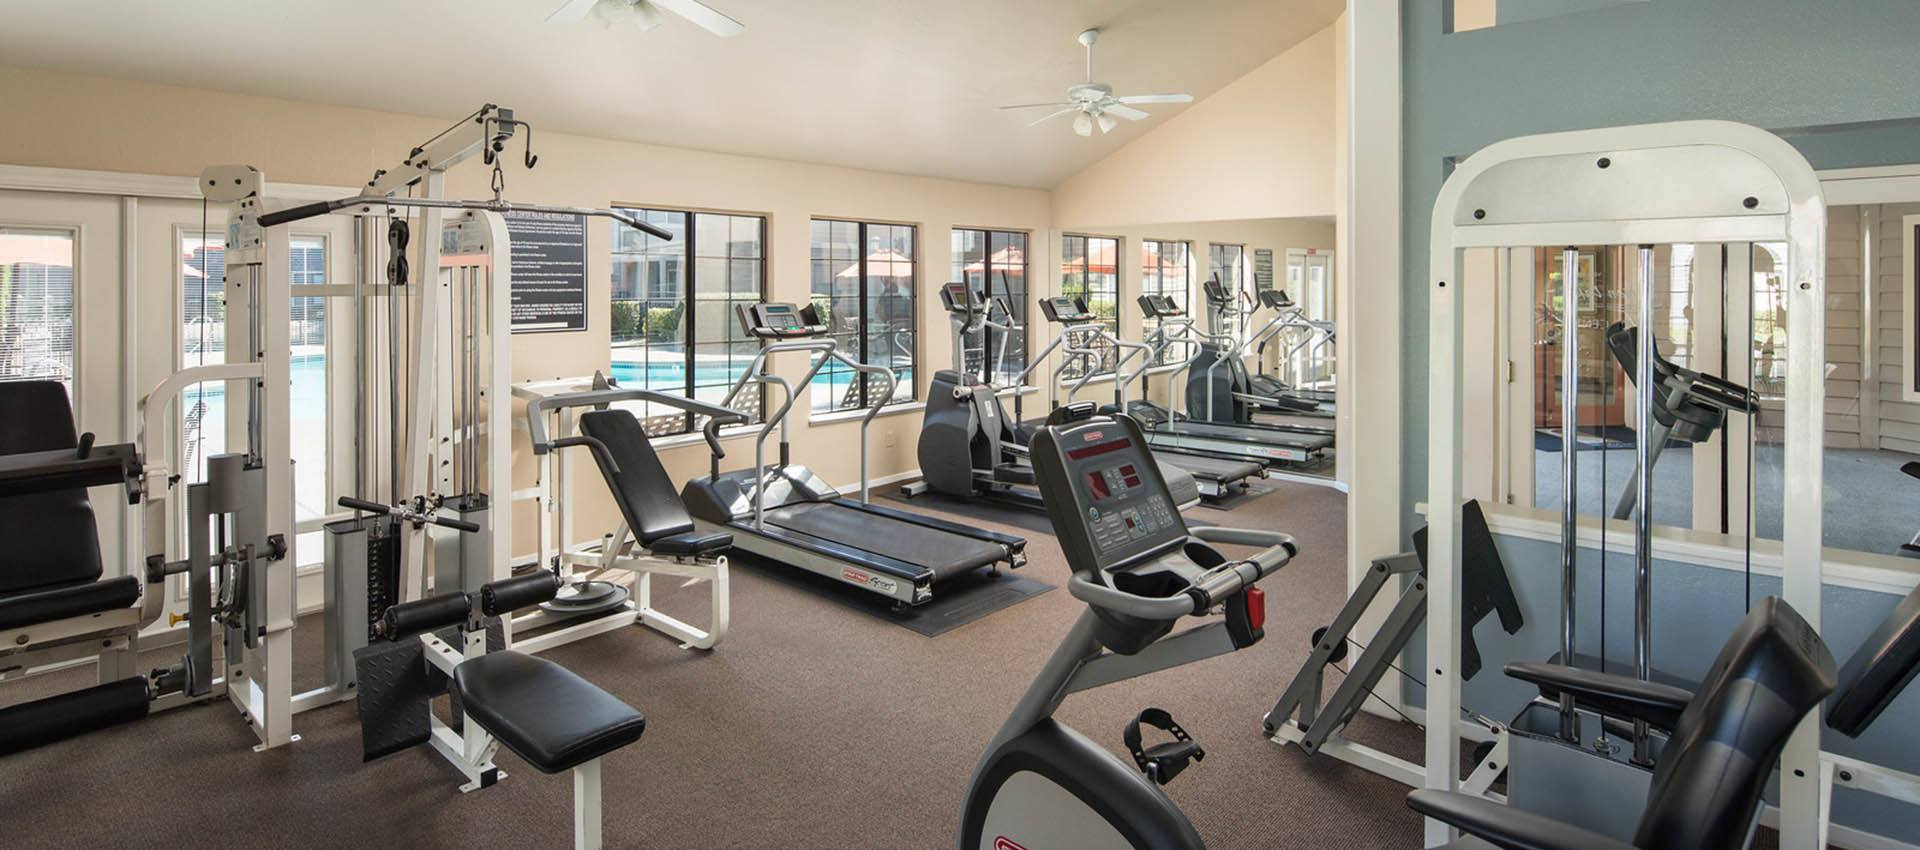 Well Equipped Fitness Center at Hidden Lake Condominium Rentals in Sacramento, California